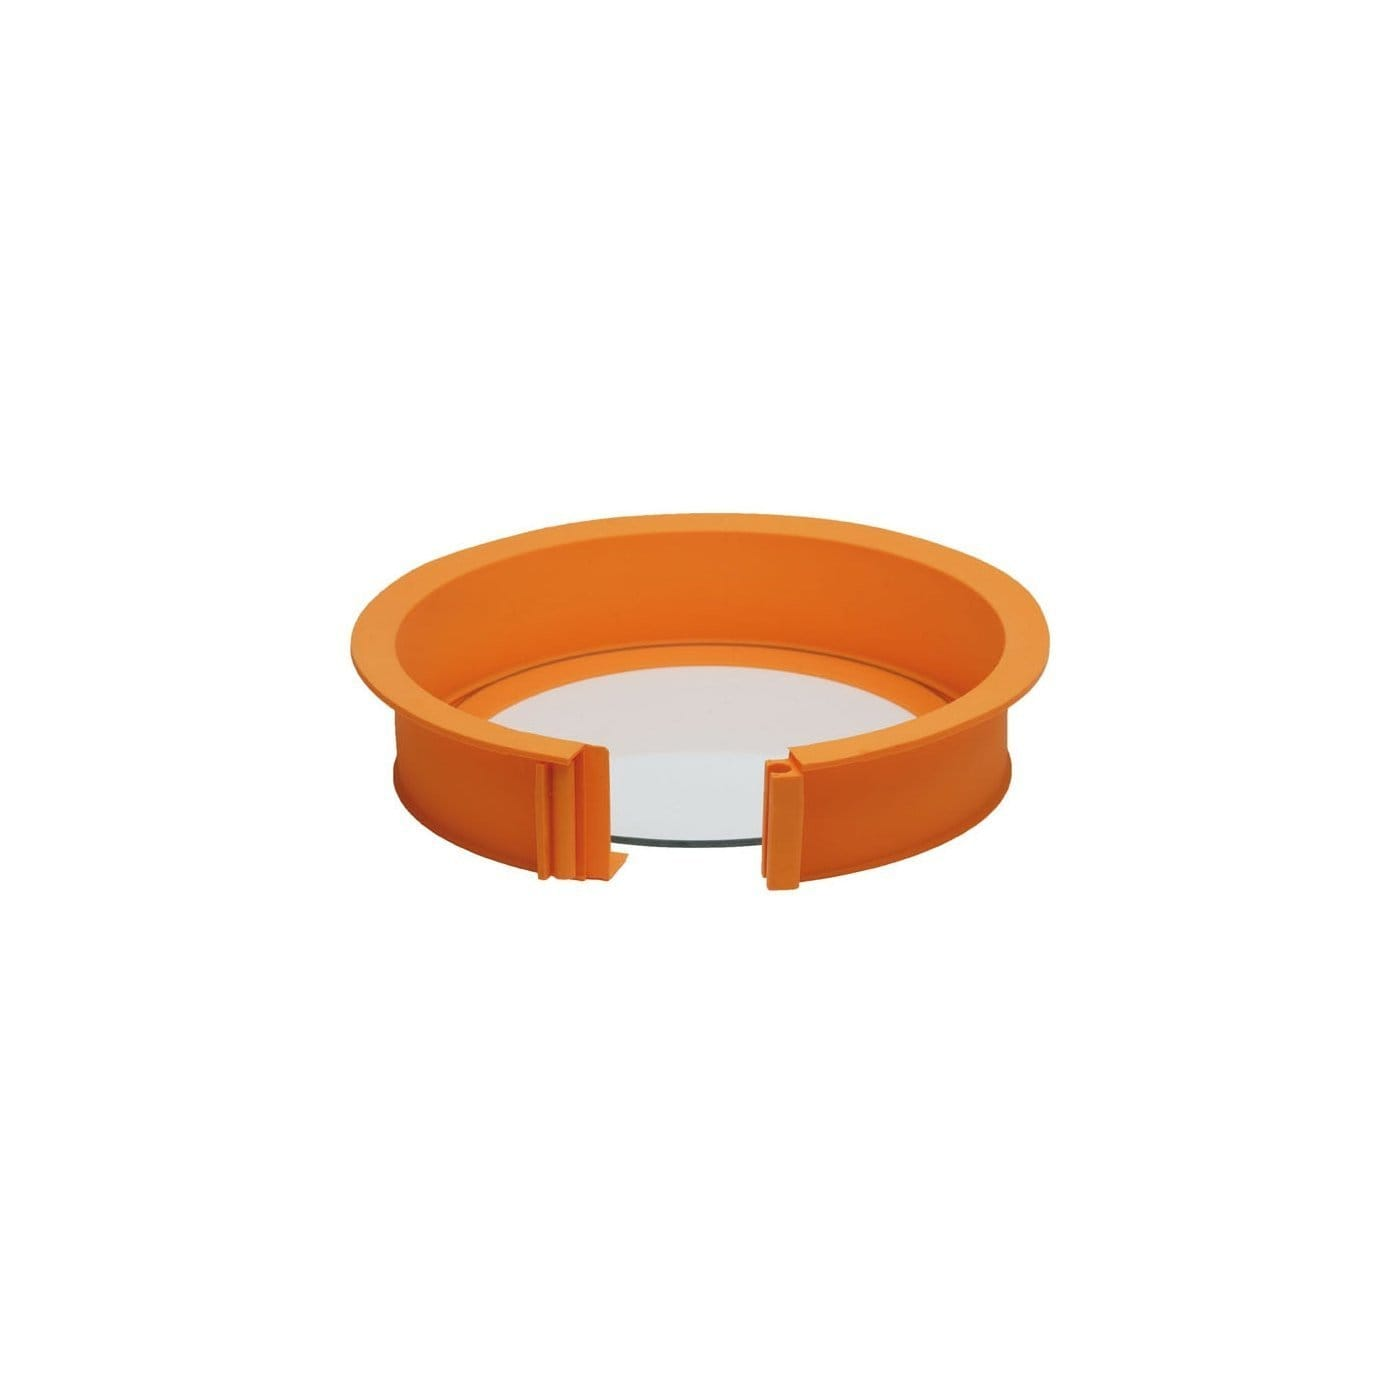 Wonderchef Pavoni Easycake Silicone Ring